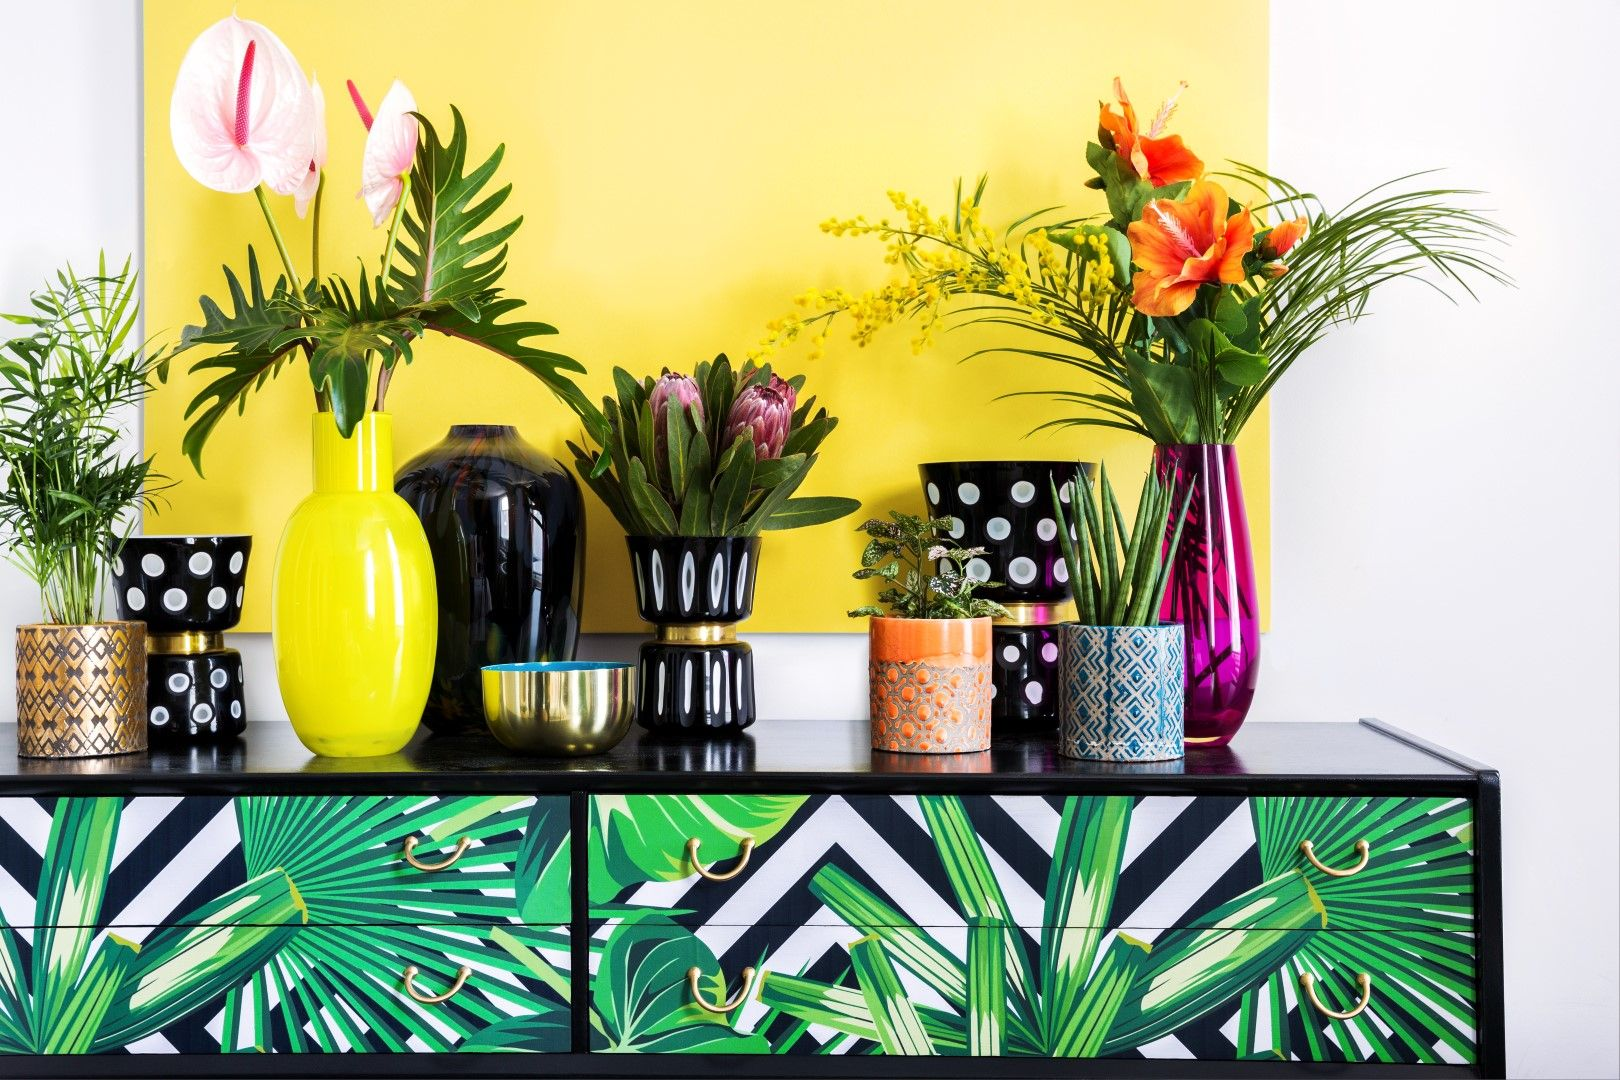 Discover the New Arcade Trend from A by Amara is part of Bohemian Home Accessories Colour - The brand new A by Amara SS18 Collection is launching soon  Discover colourful interior design ideas with the Arcade trend & get exclusive early access to the new designs